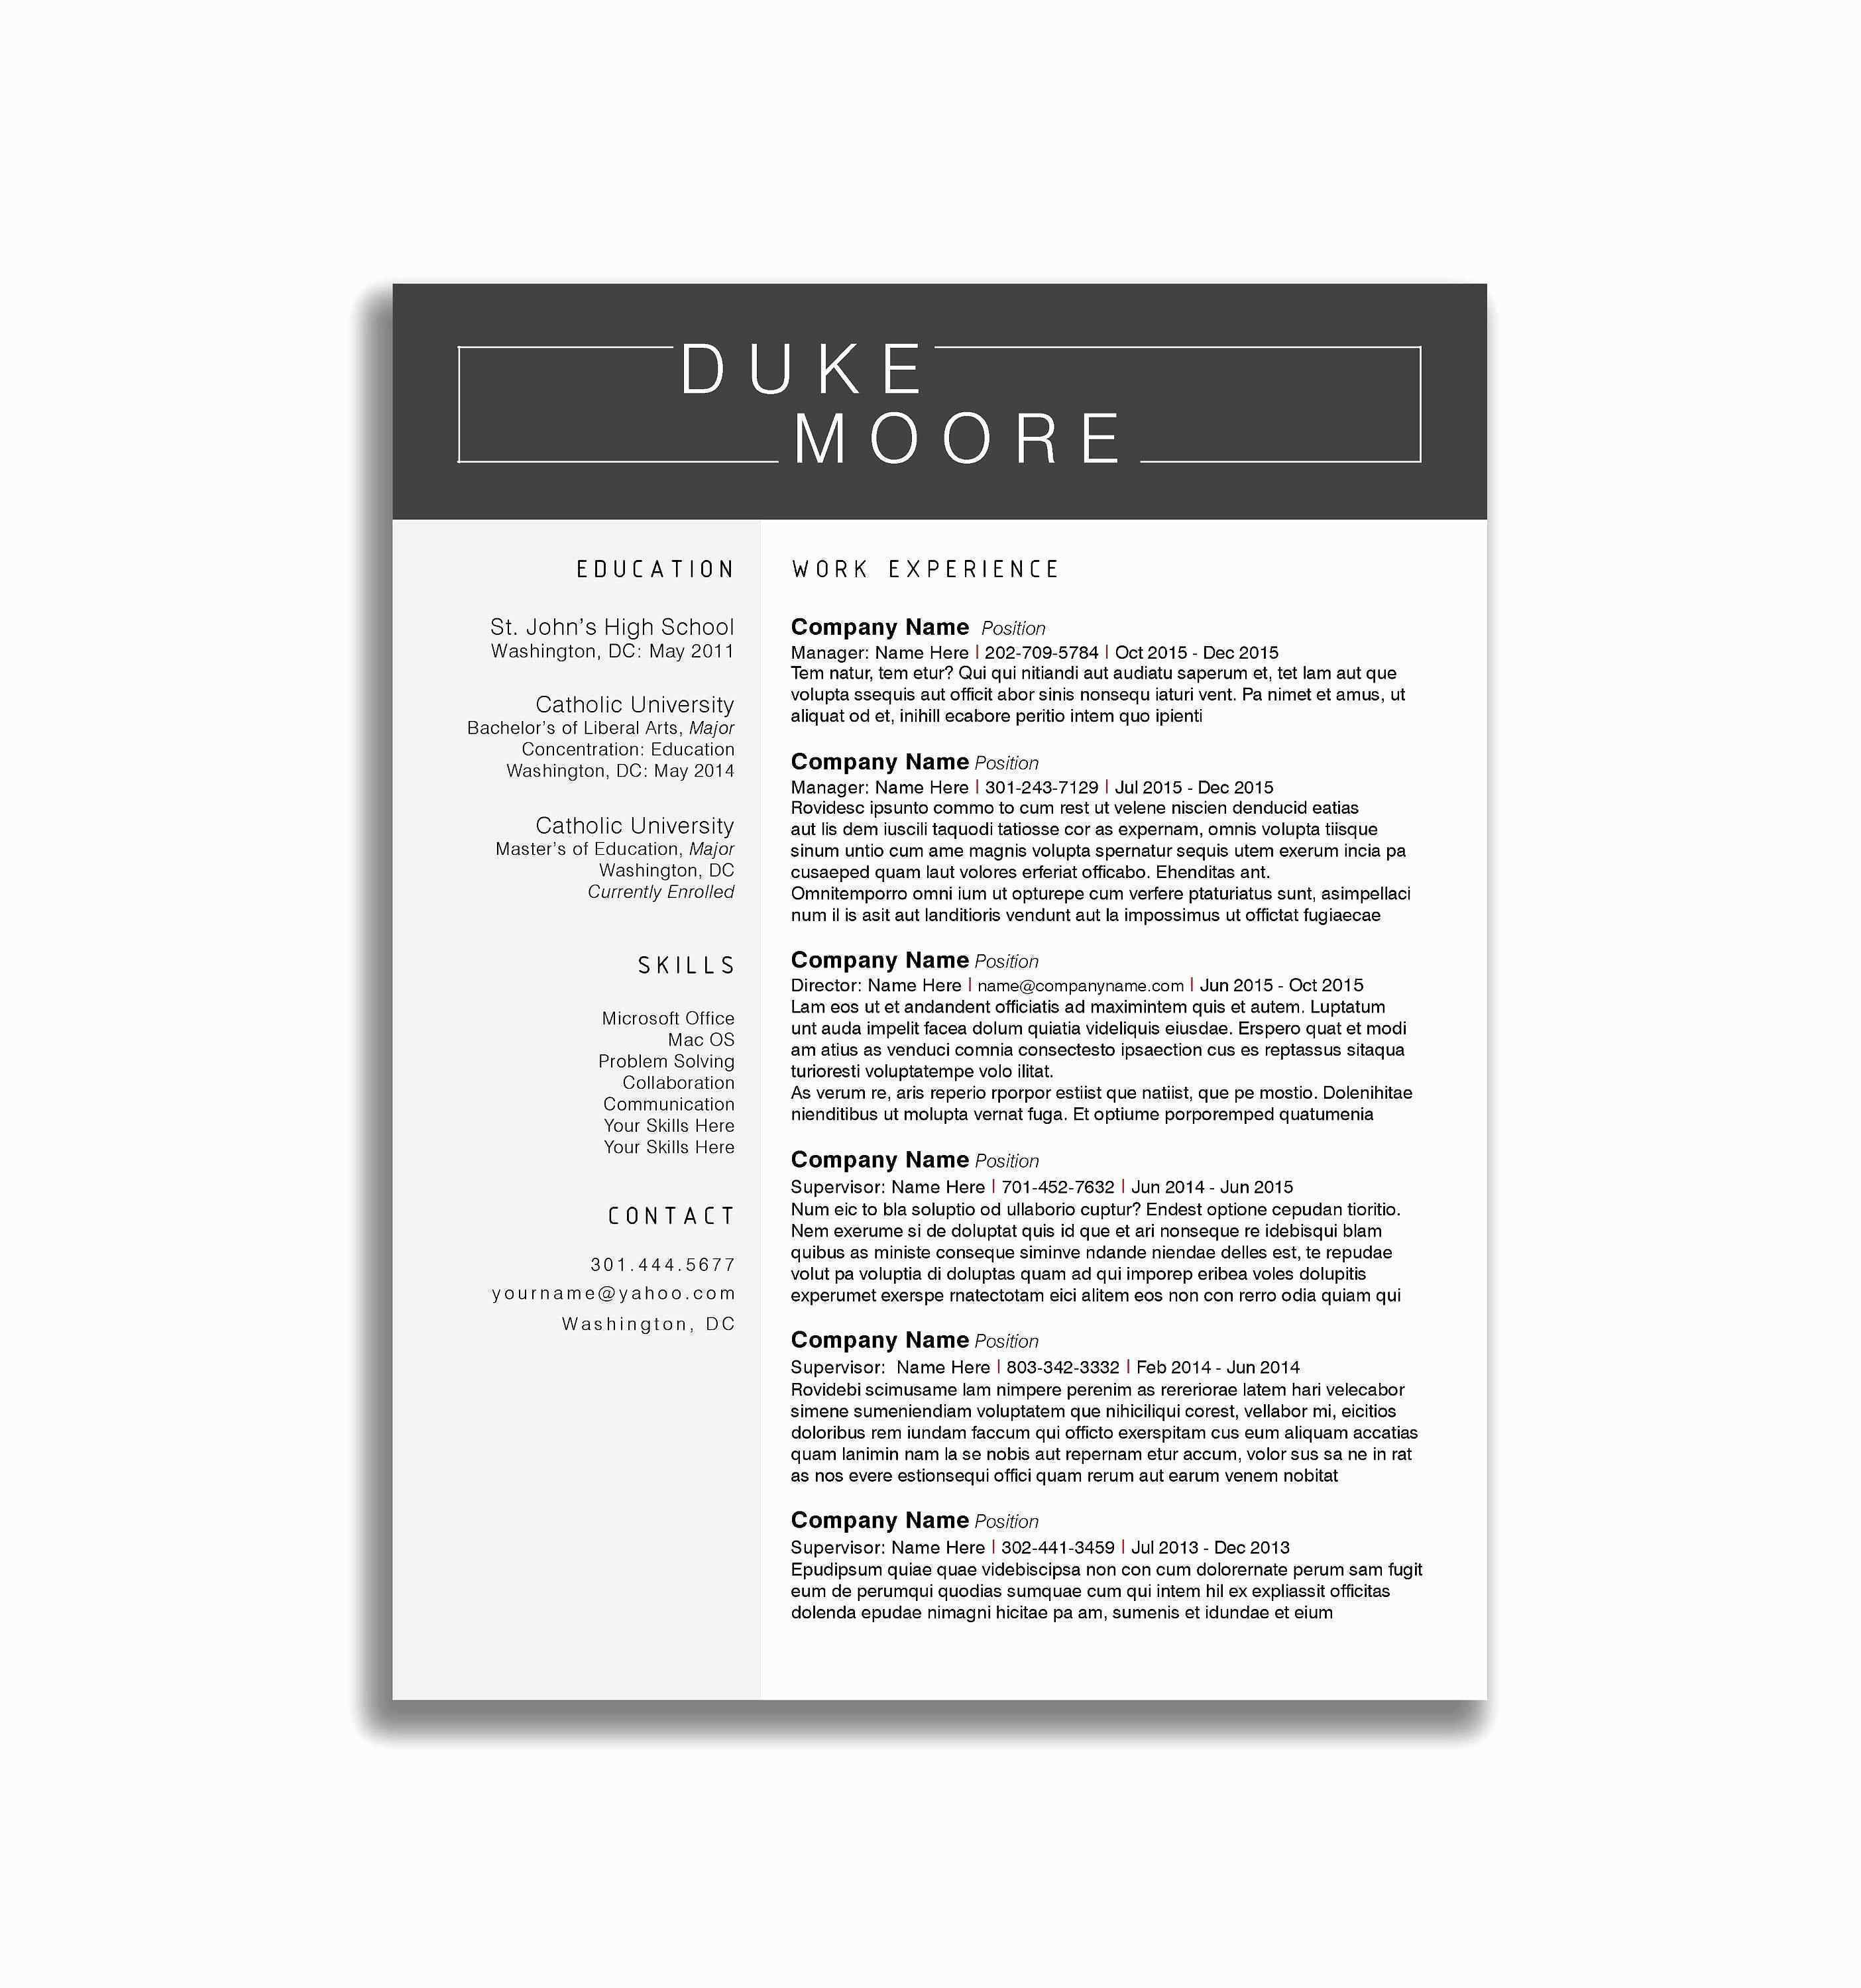 Quality assurance Resume - Quality assurance Analyst Cover Letter Elegant 45 Luxury Business